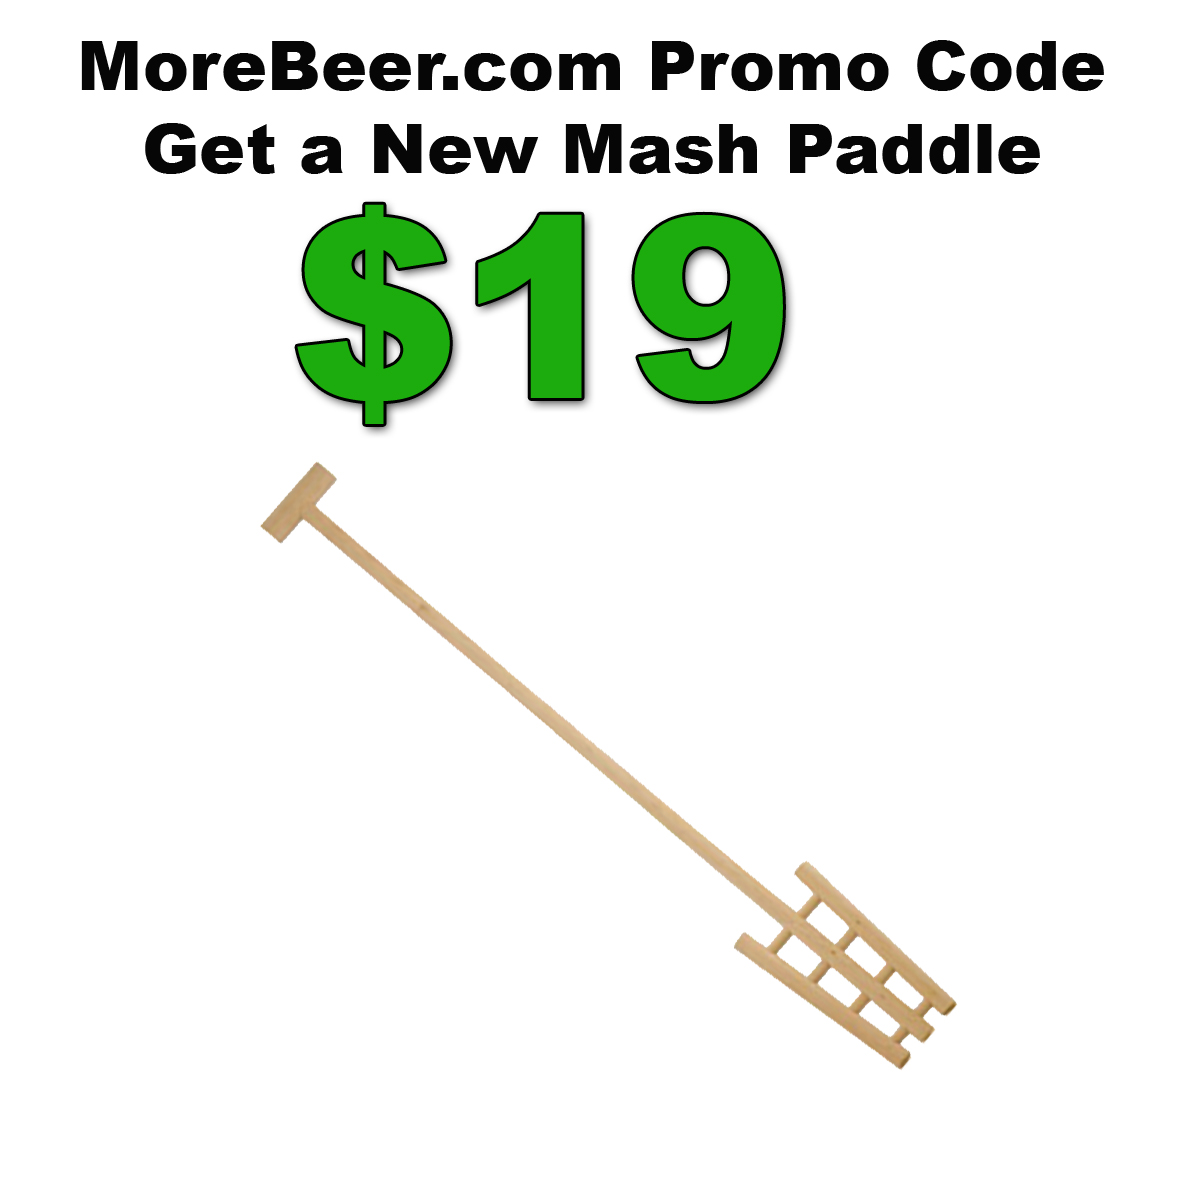 Home Wine Making Coupon Codes for Get a new Hardwood Mash Paddle for Just $19 with this MoreBeer.com Promo Code Coupon Code